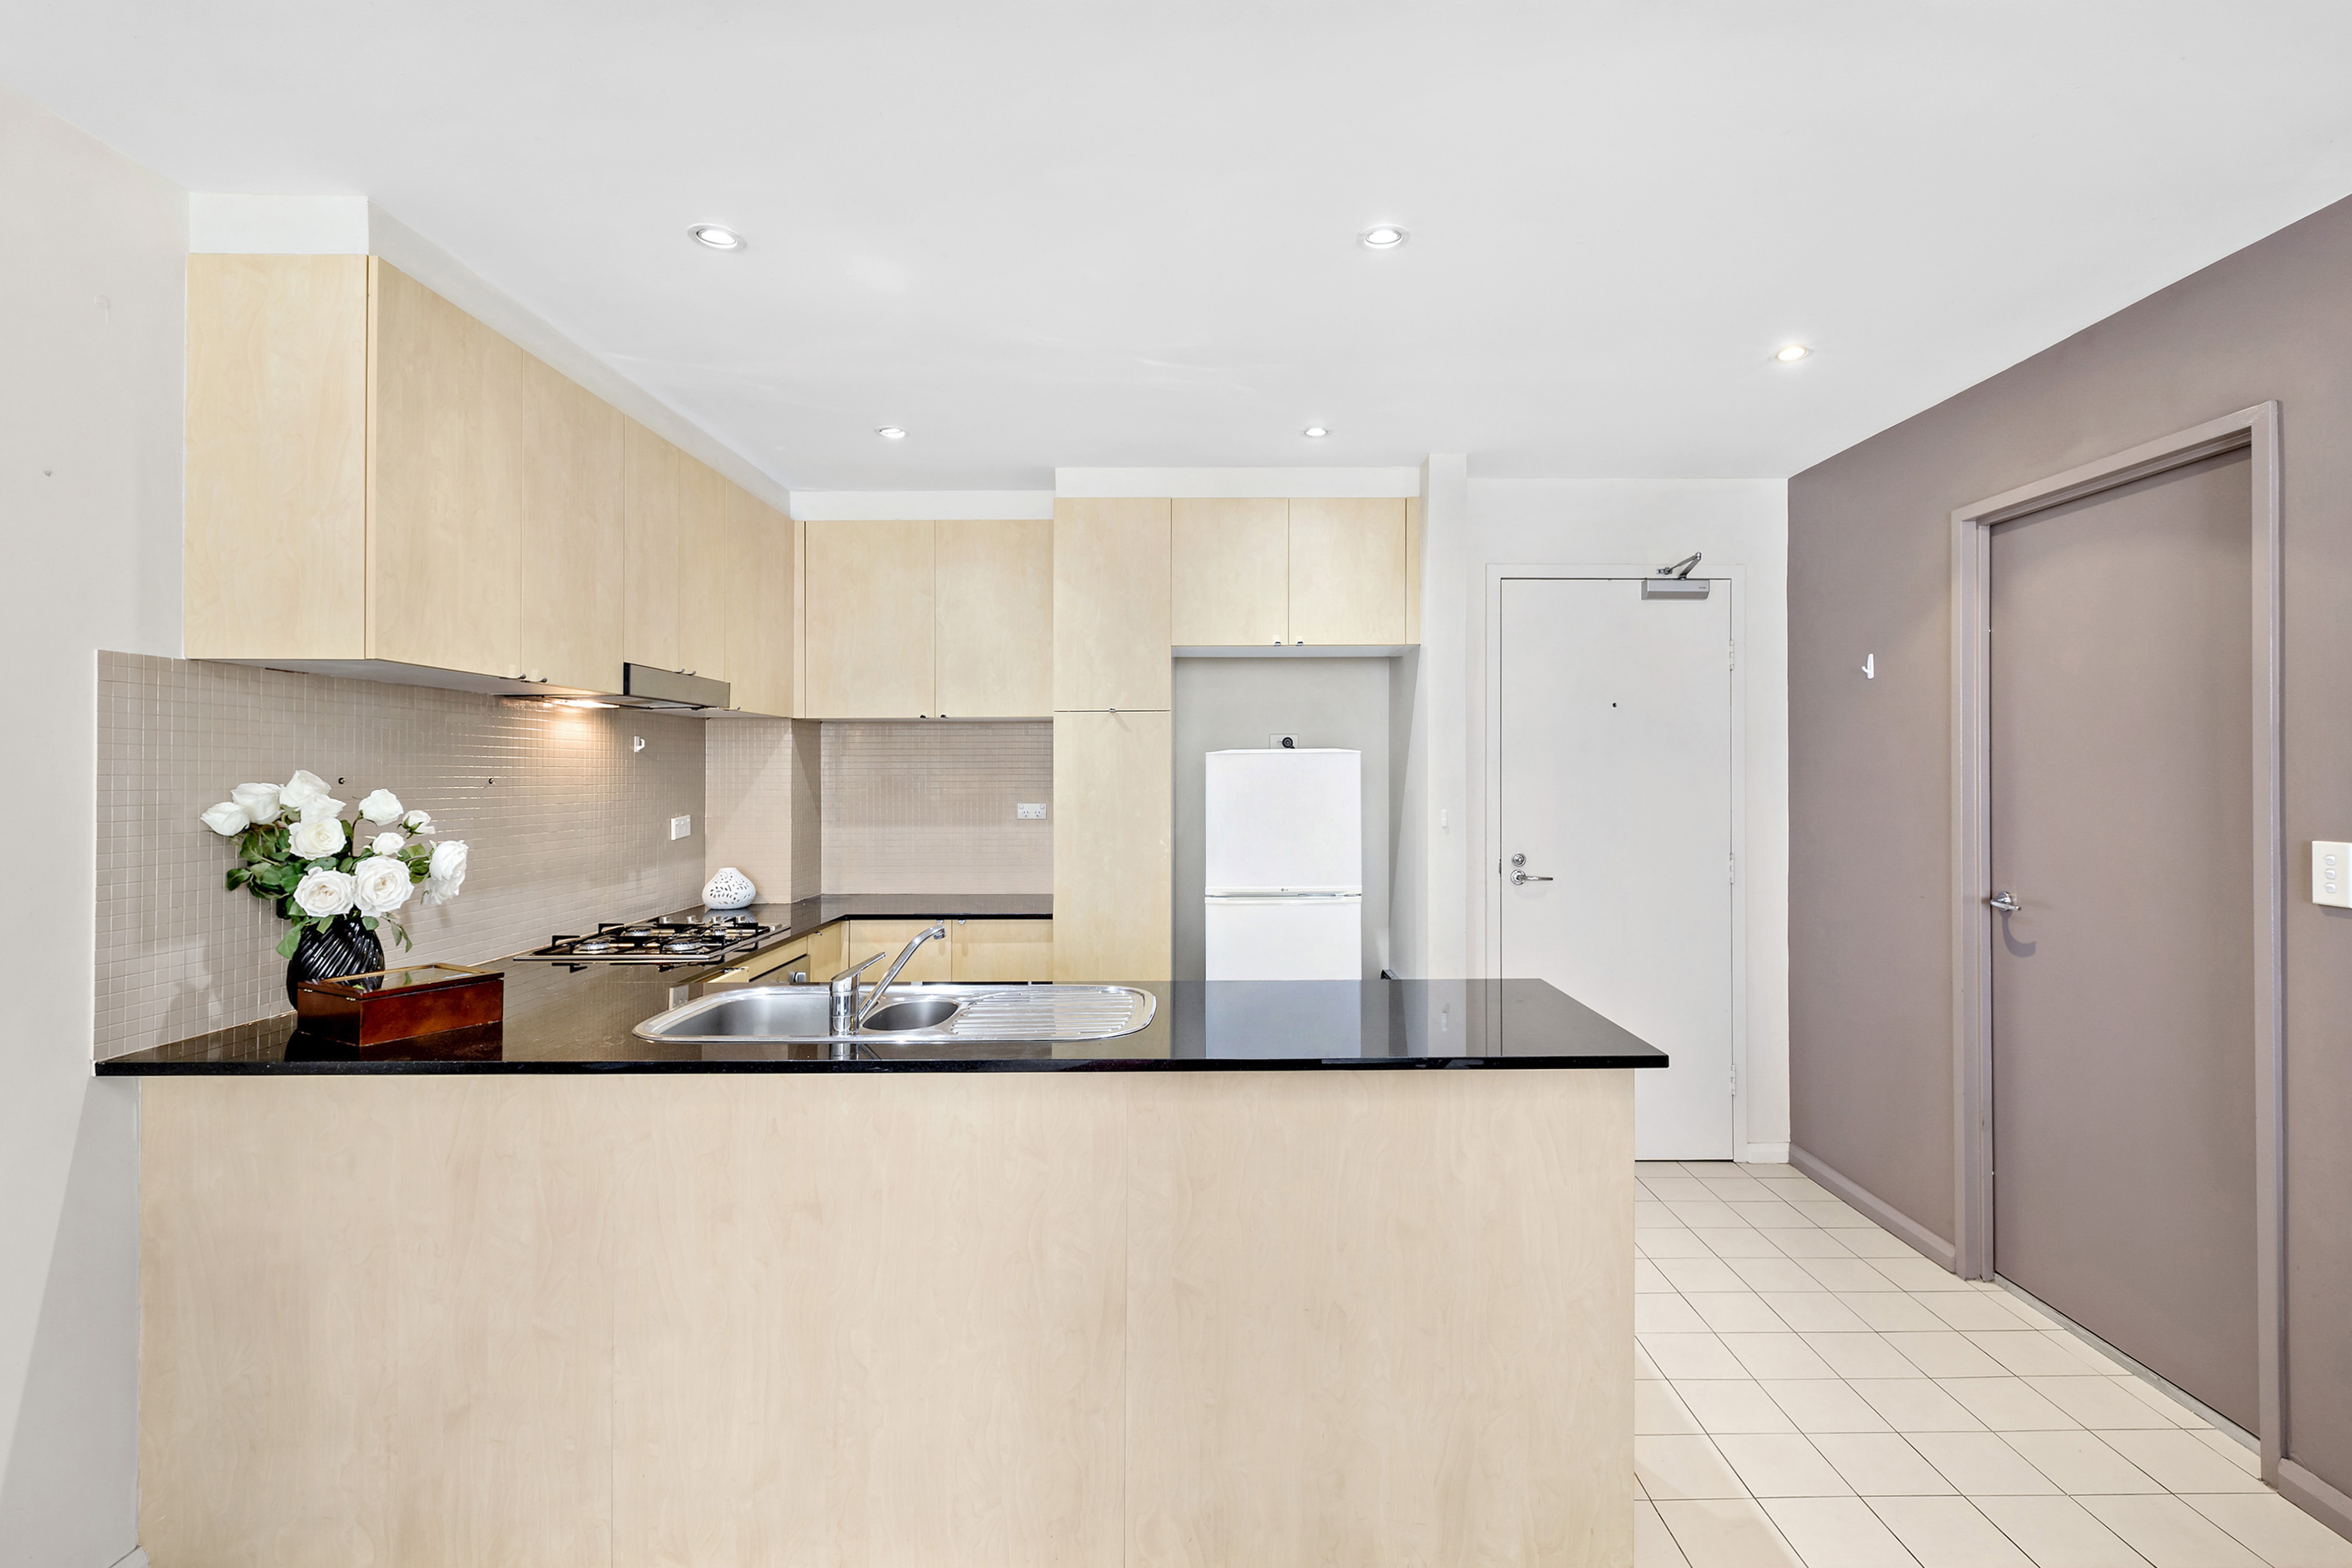 Sold - 228/268 Pitt Street - Waterloo , NSW 2017